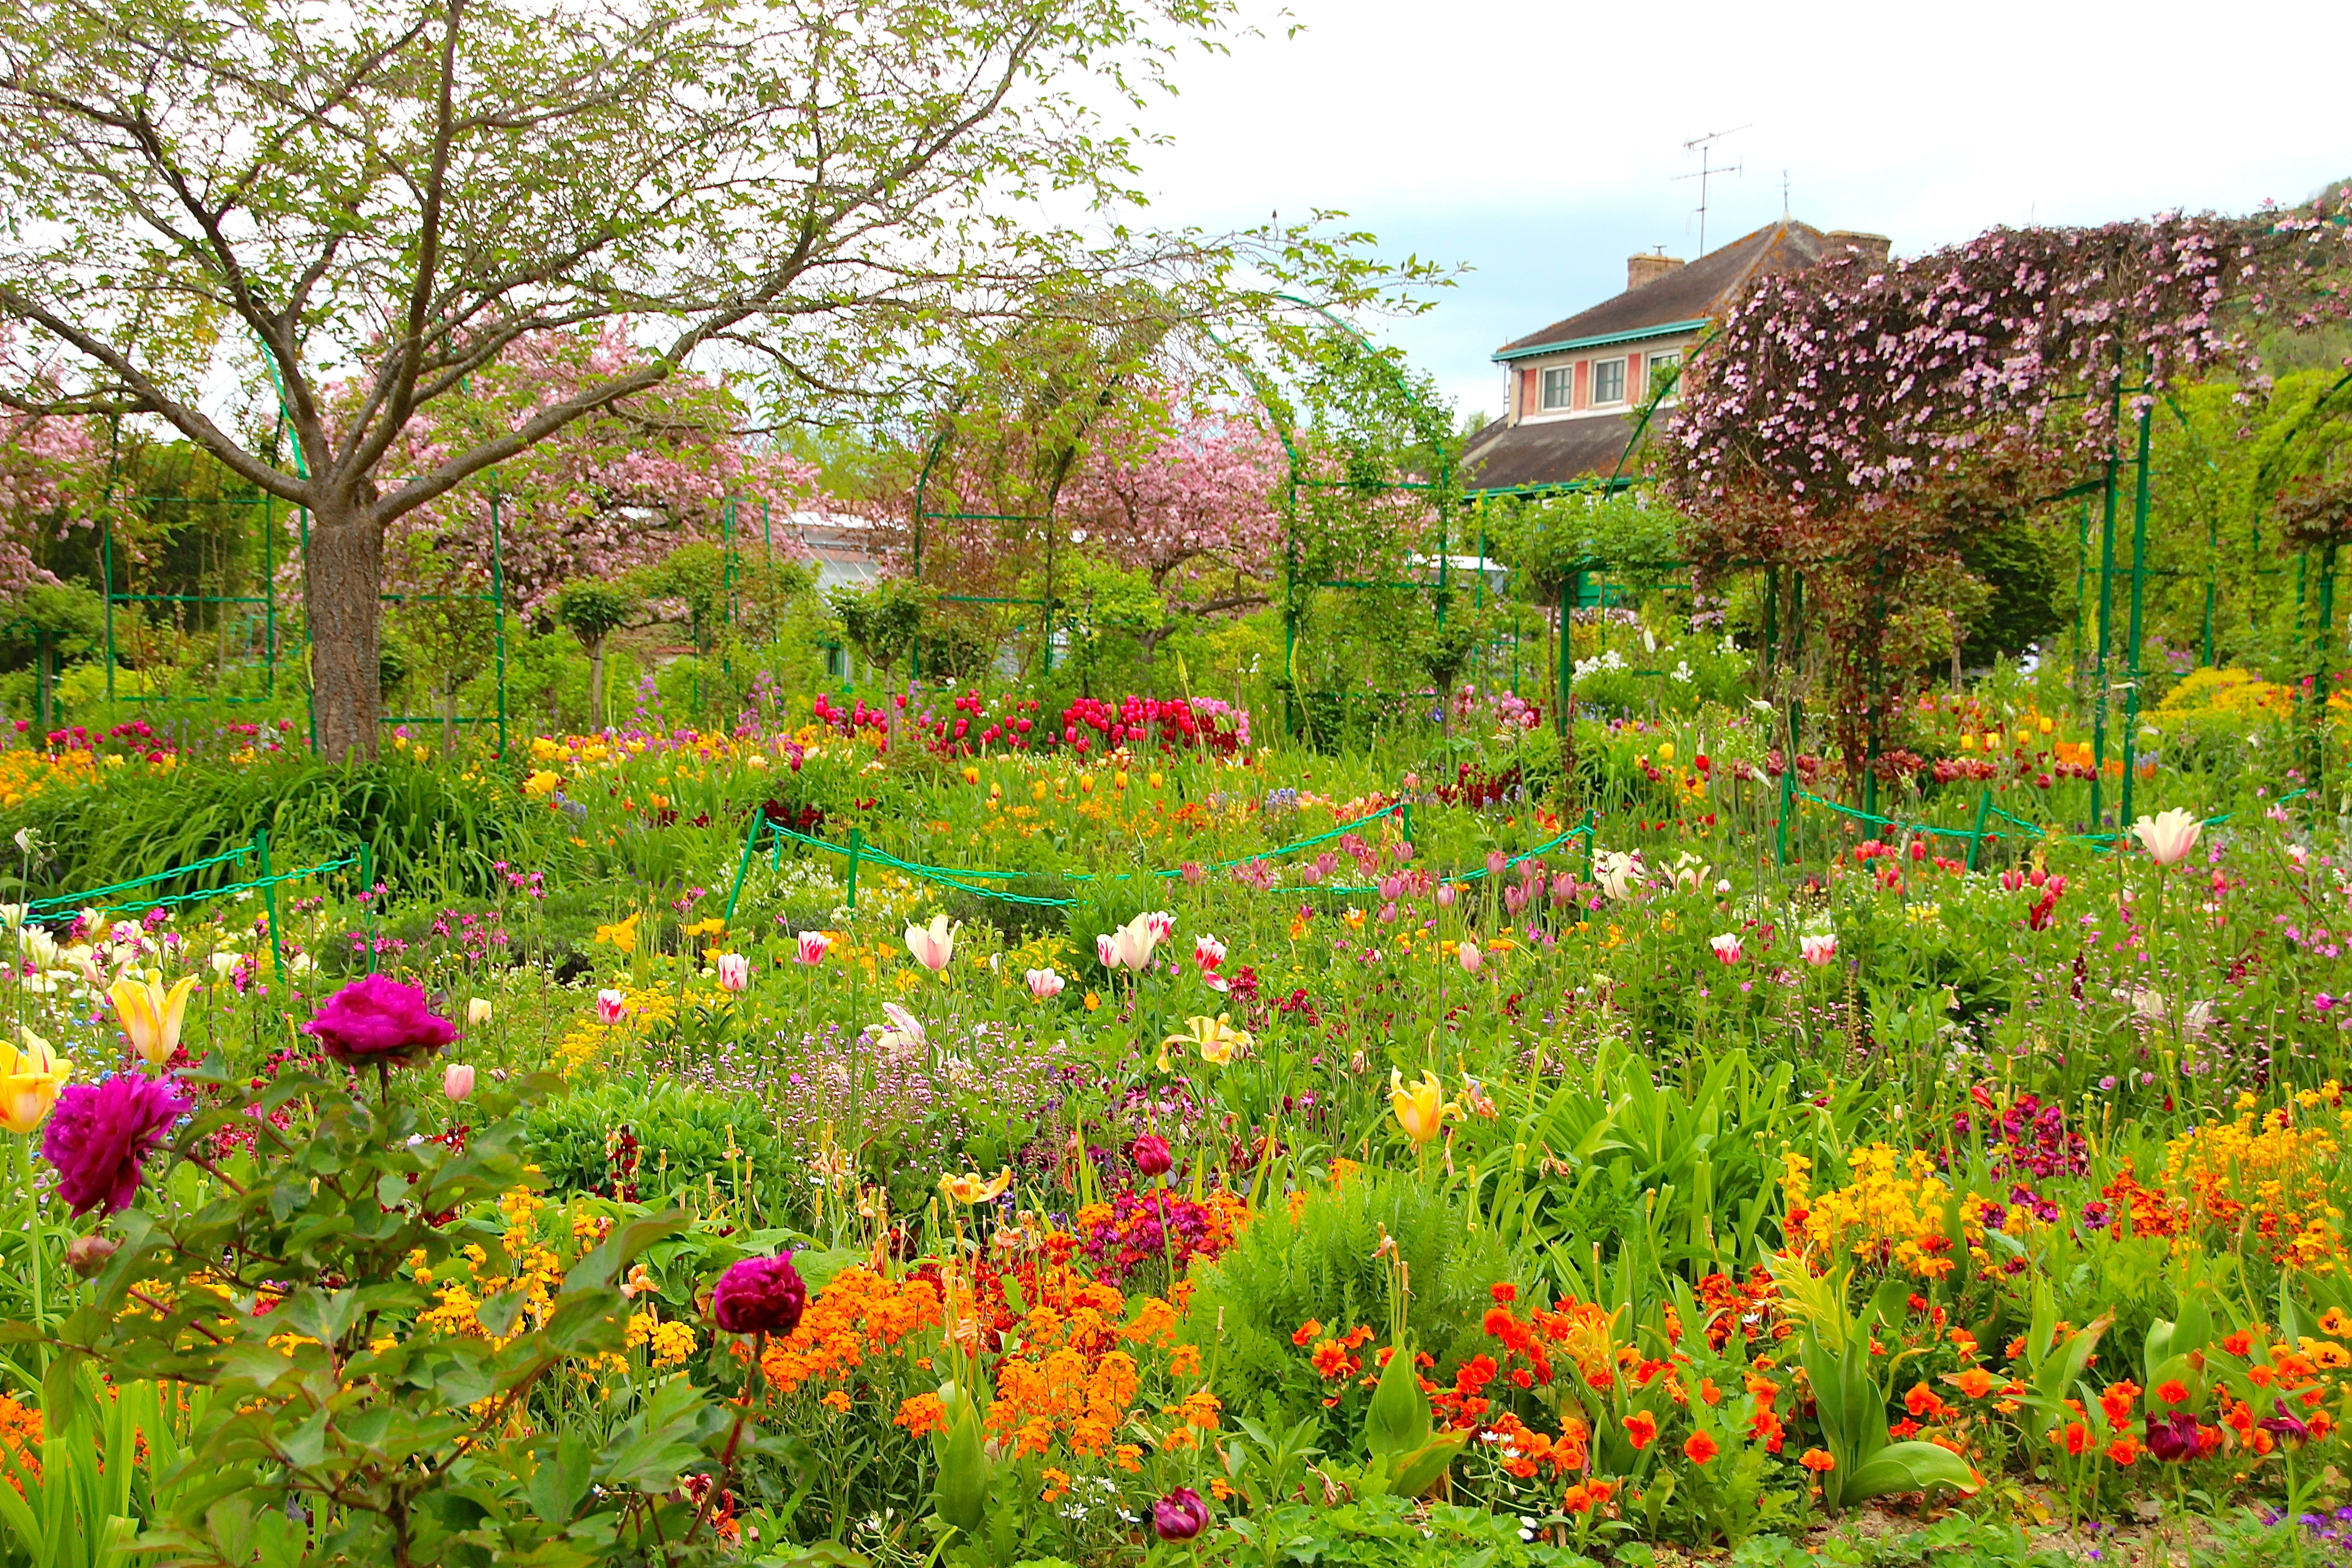 Spring flowers blooming at Giverny. France. 05.09.16. 2